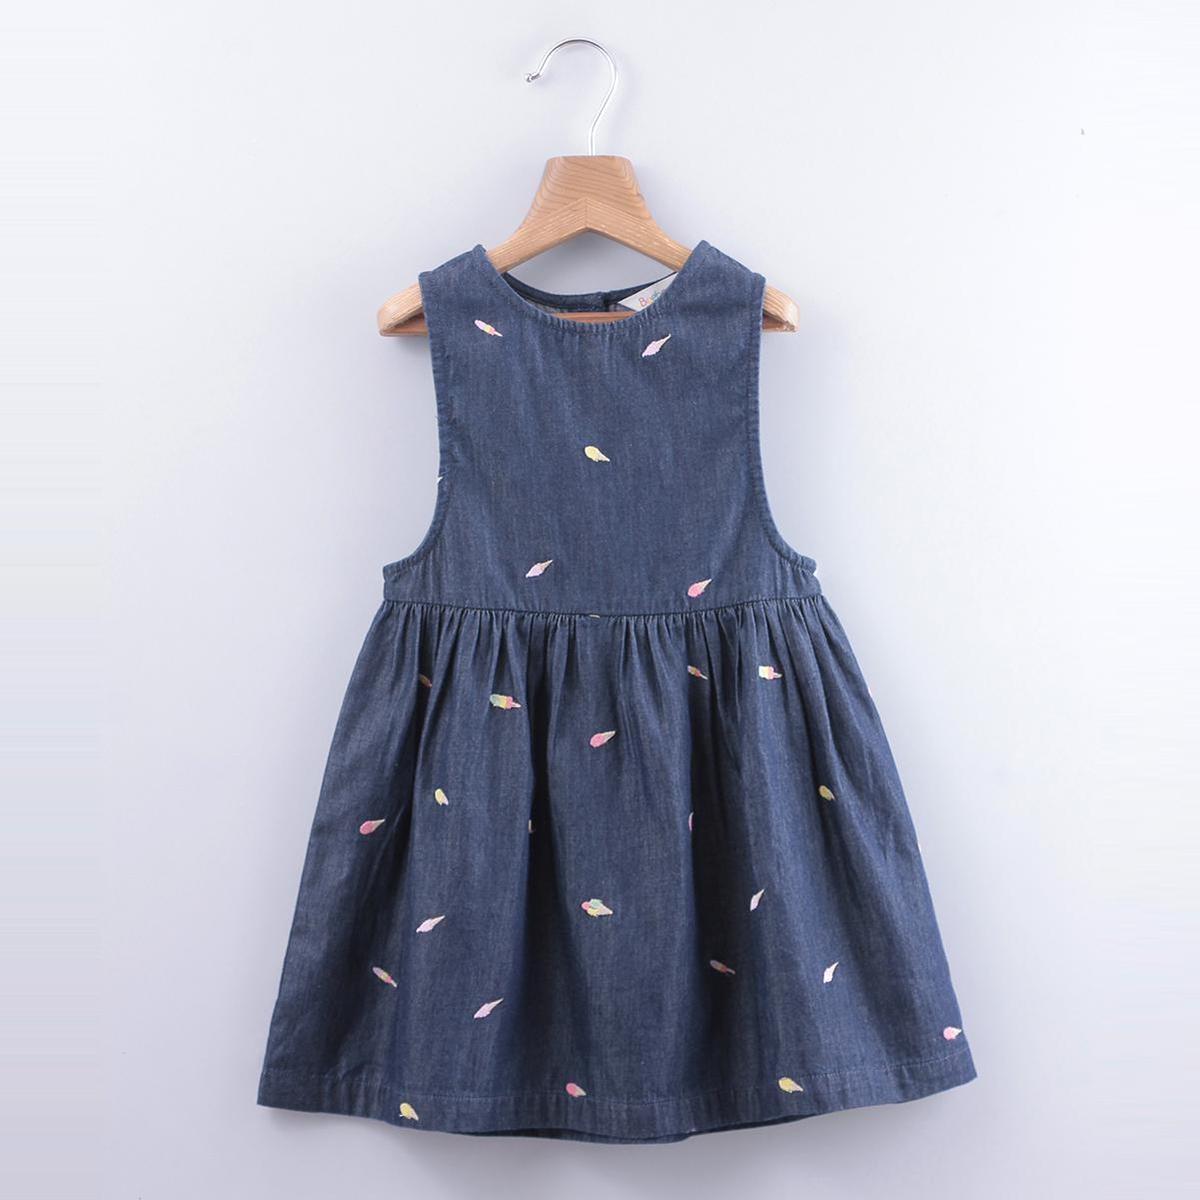 Beebay - Blue Colored Ice Cream Embroidery Cotton Dress For Girls